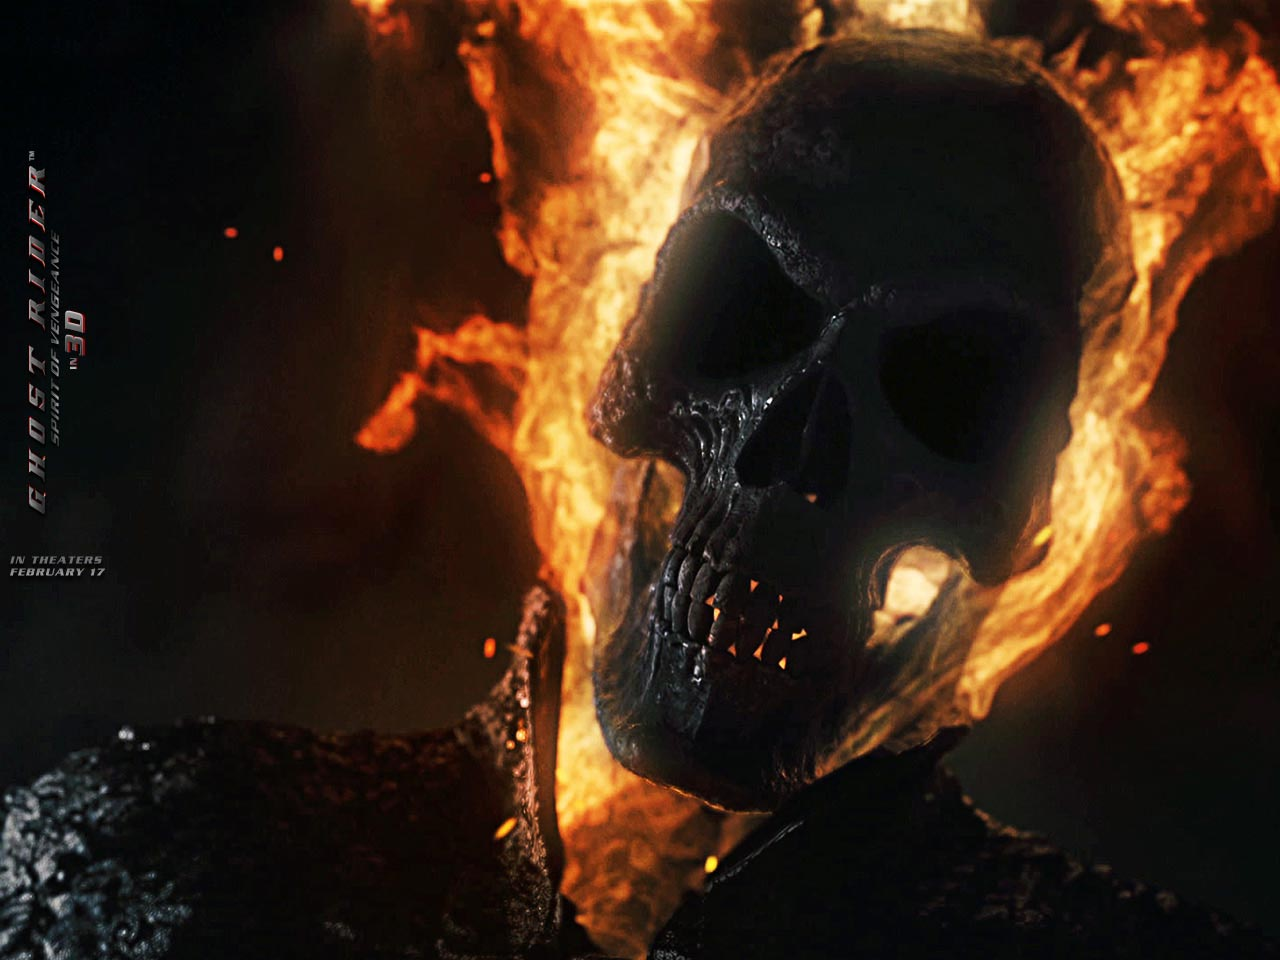 GHOST RIDER 2 HD WALLPAPERS FREE HD WALLPAPERS 1280x960